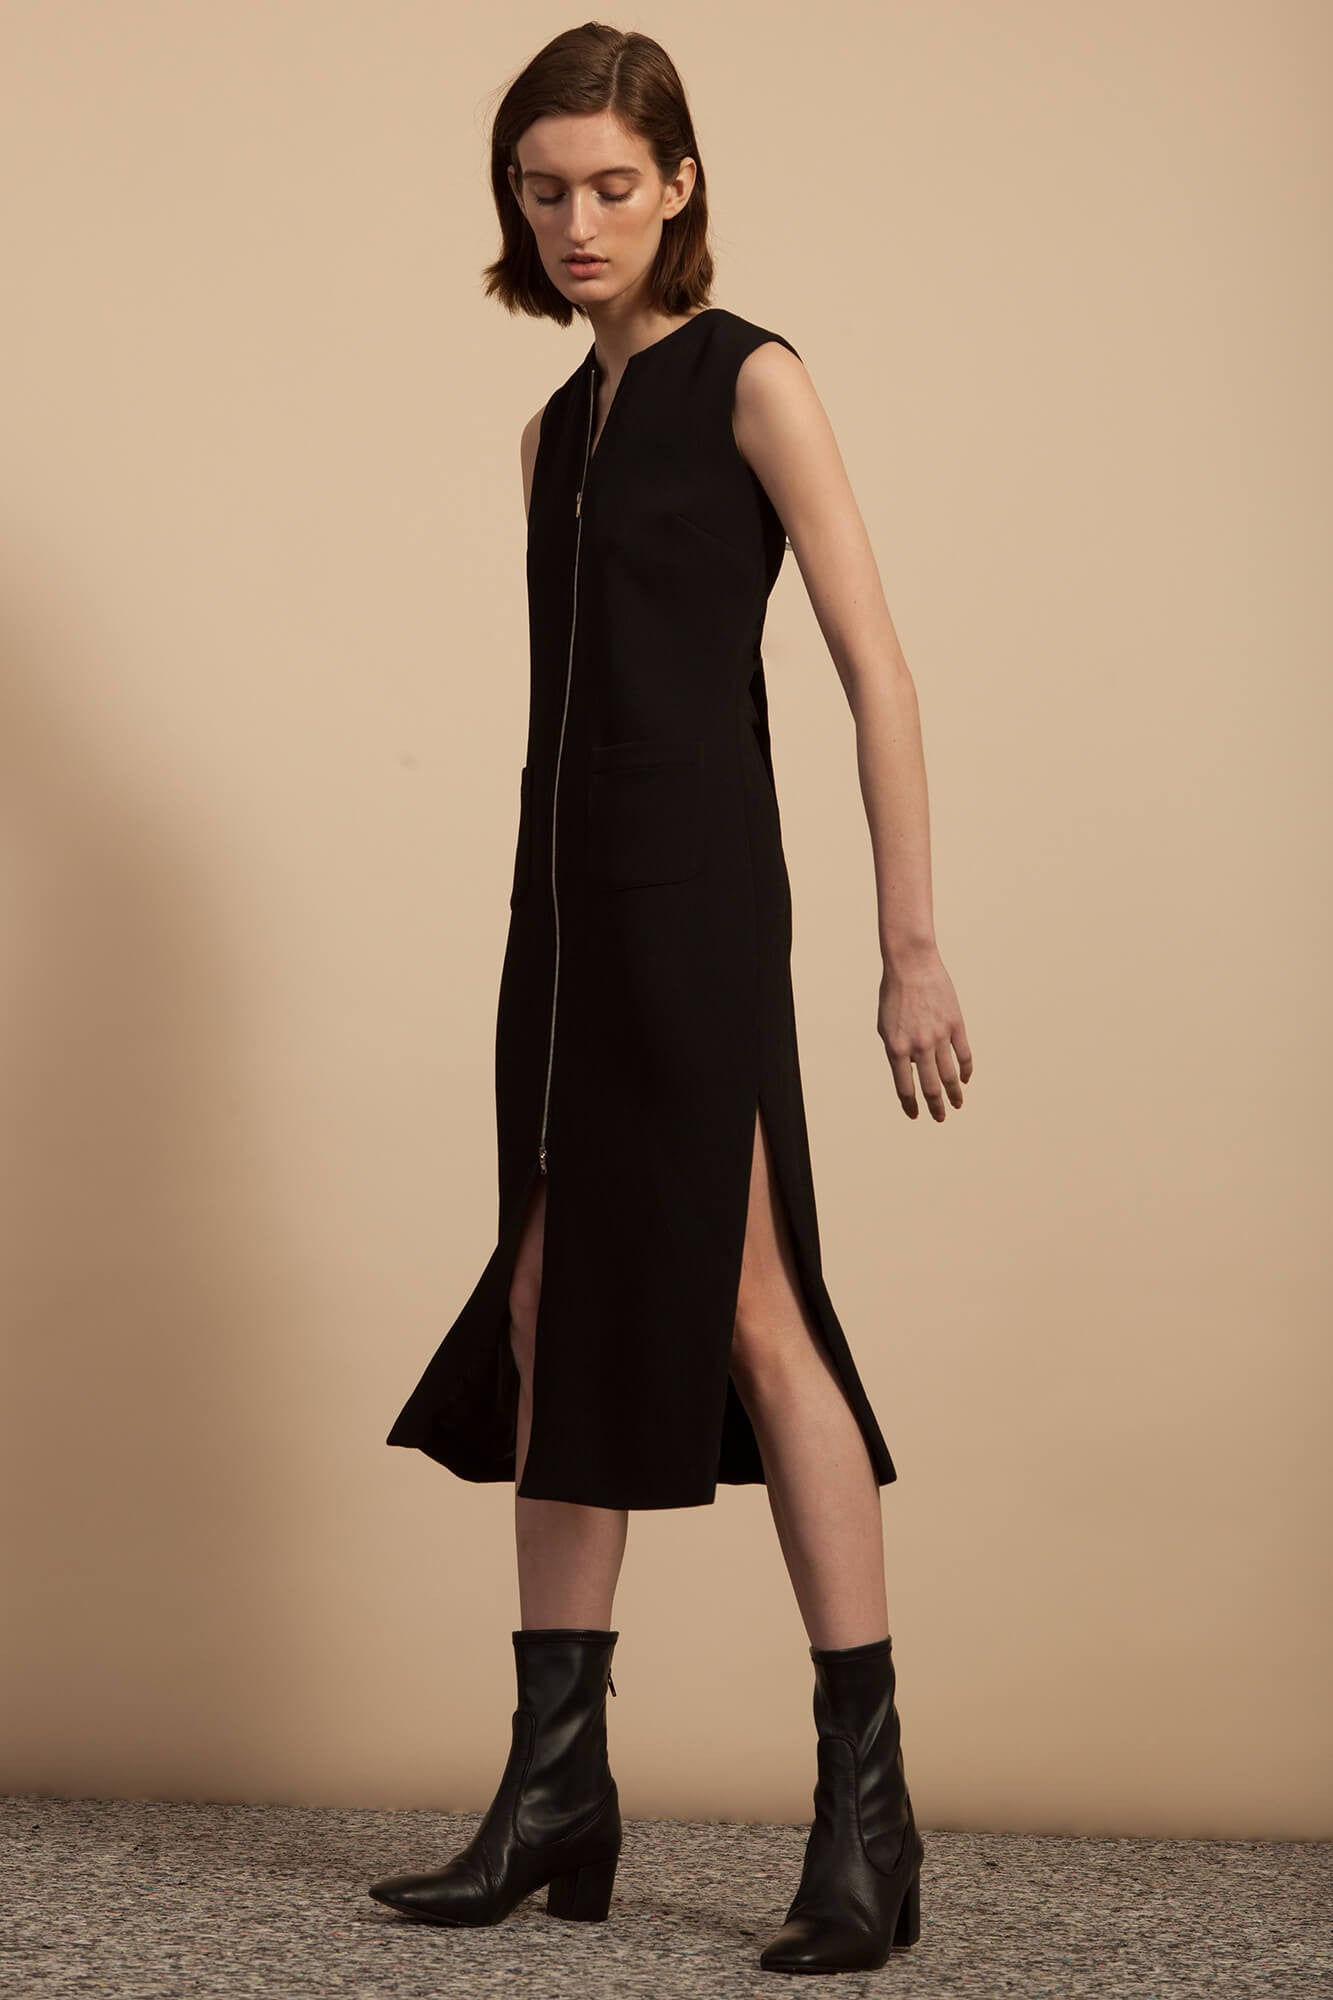 Zip Front Dress - Black Matte Crepe